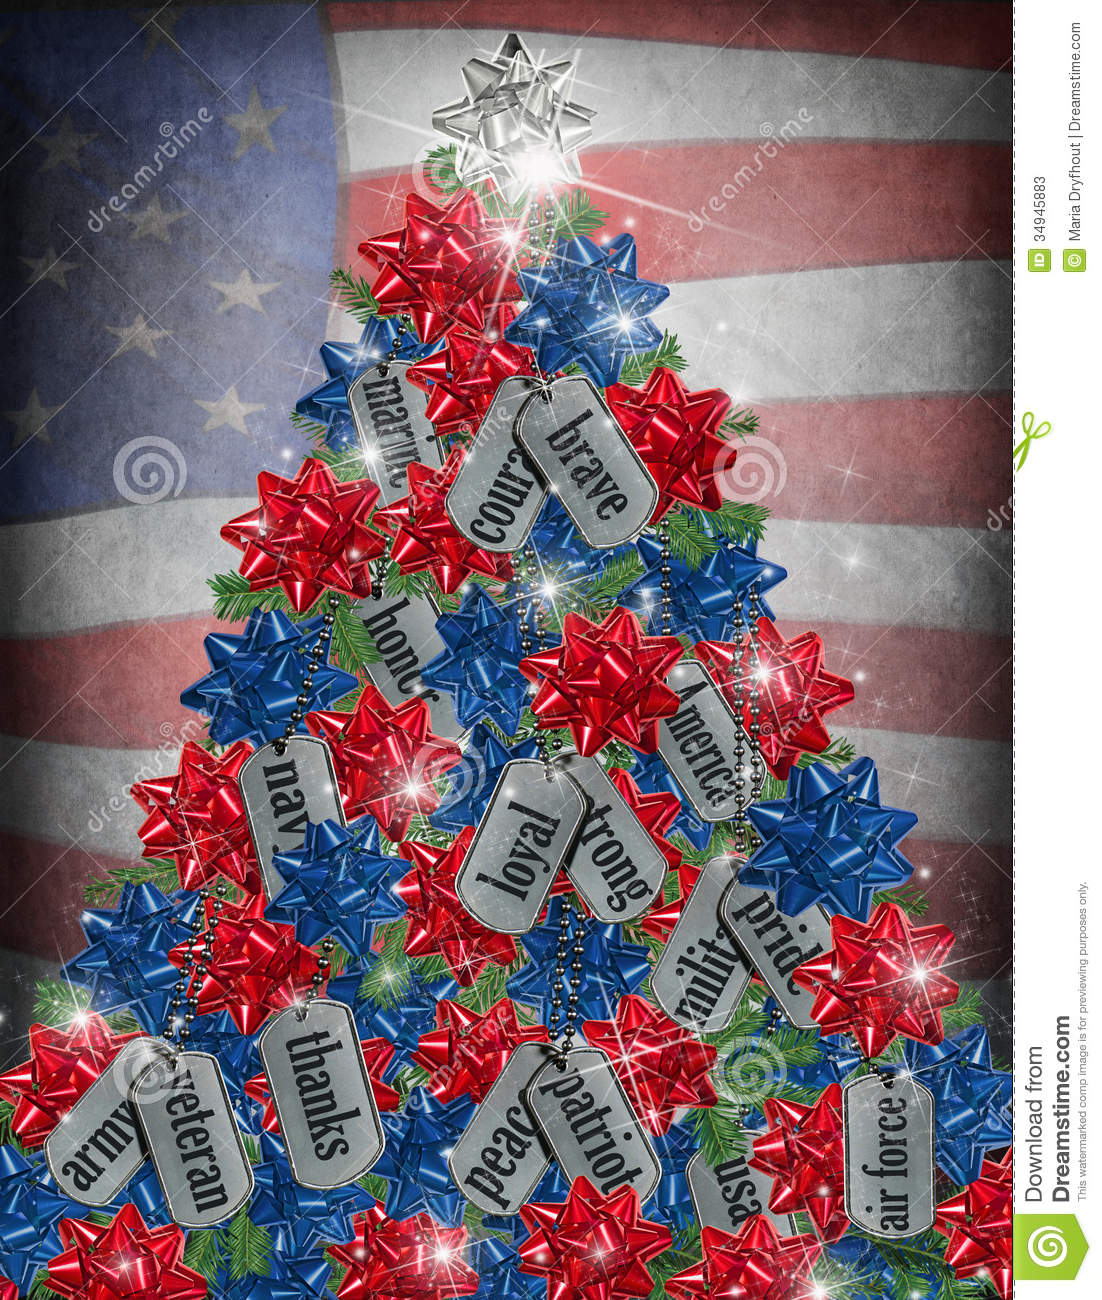 Military Christmas Tree Stock Photos - Image: 34945883